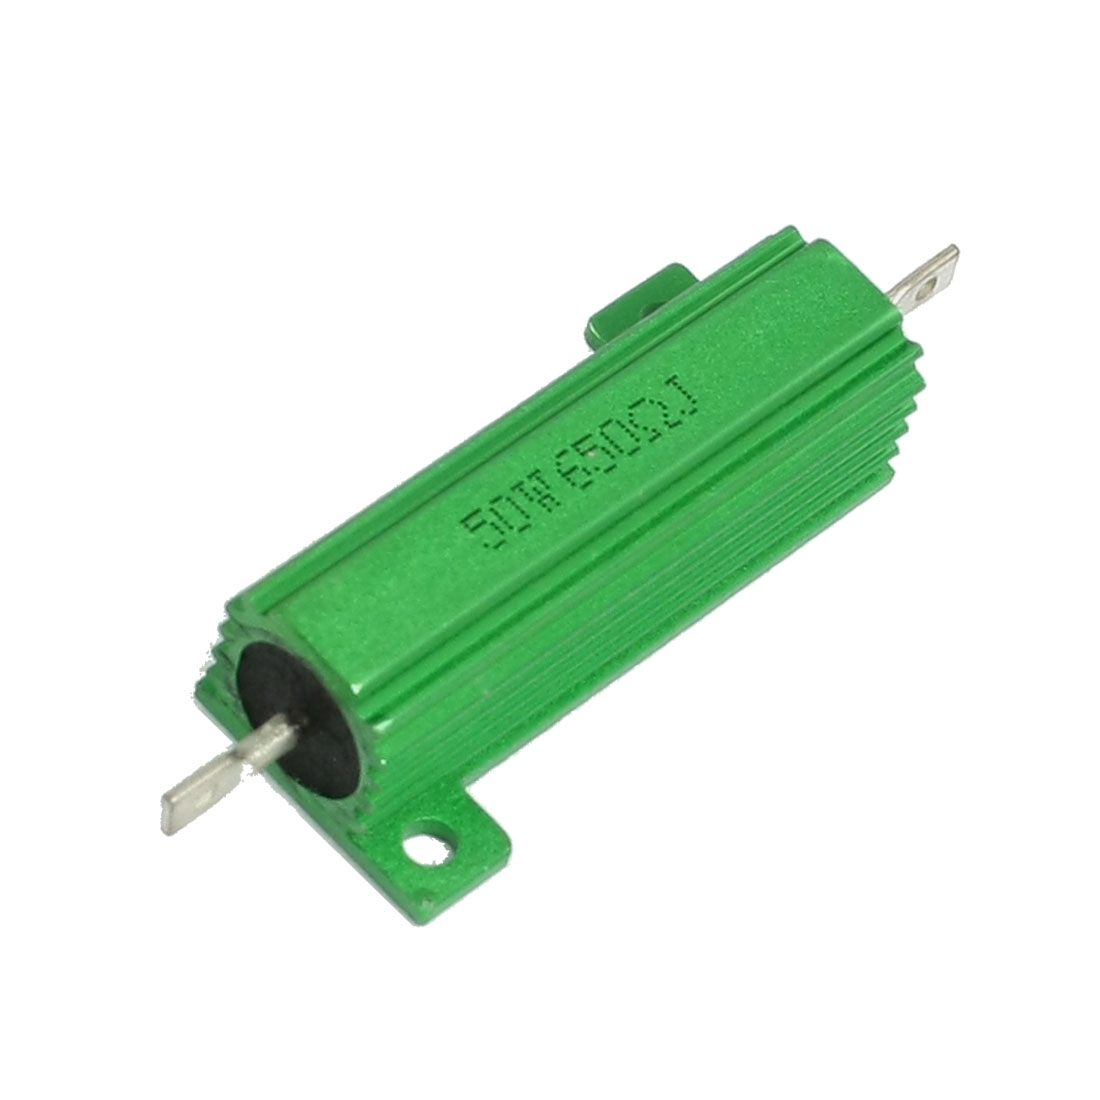 50W 650 Ohm Green Aluminium Chassis Mounted Wirewound Resistor